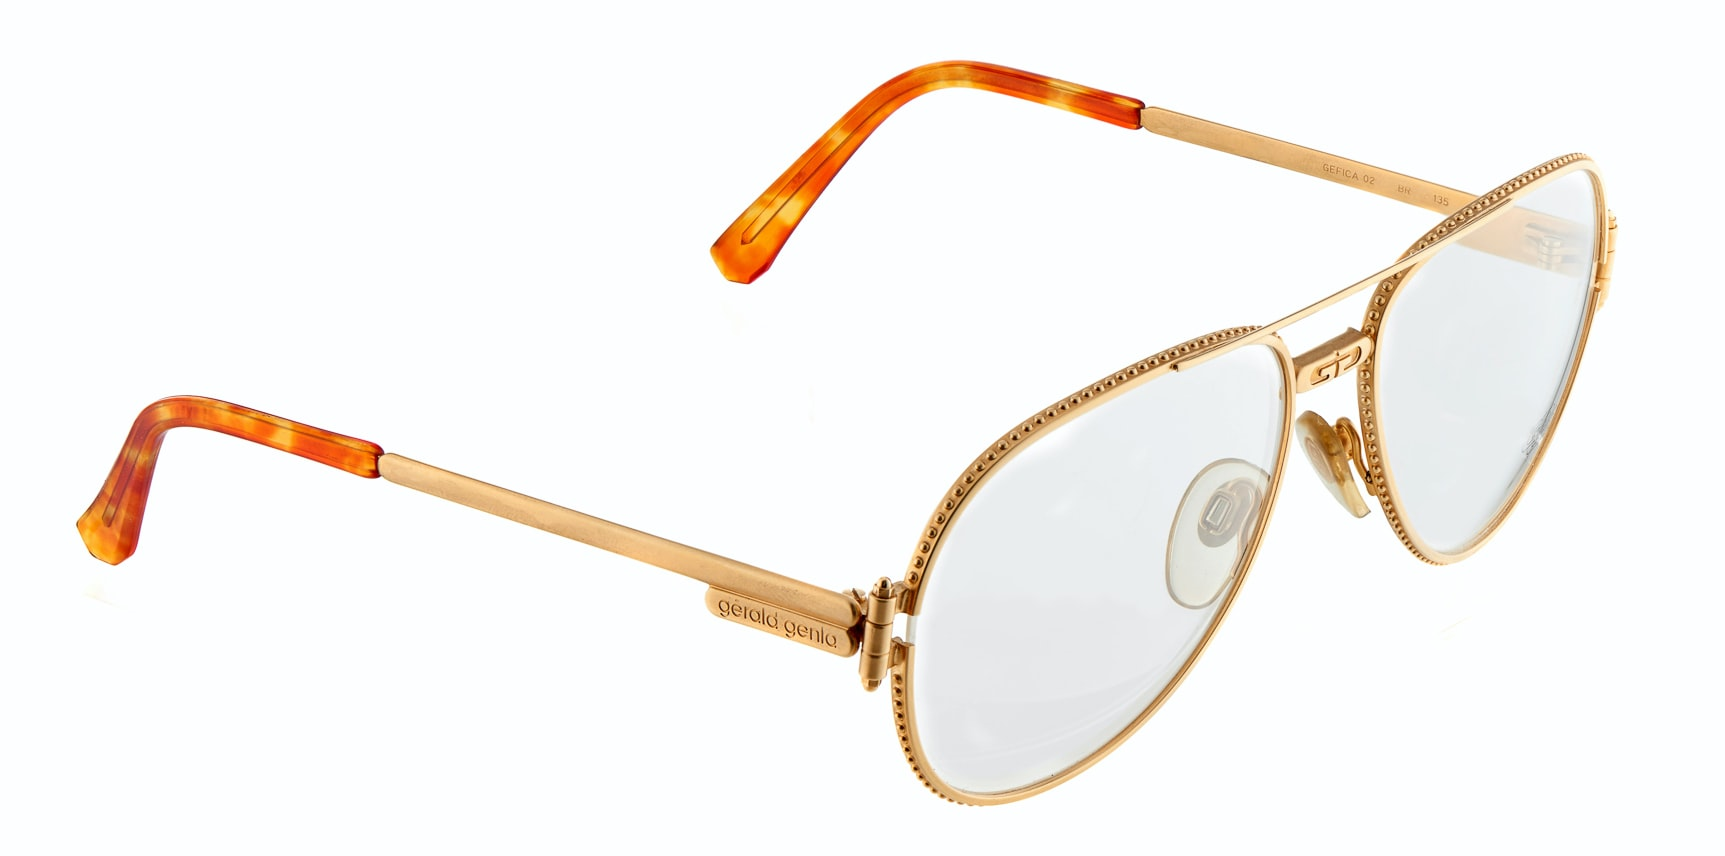 Gerald Genta Eye Glasses Found: Two Pairs Of Vintage Gerald Genta Designed Eyeglasses, For Sale Found: Two Pairs Of Vintage Gerald Genta Designed Eyeglasses, For Sale 1